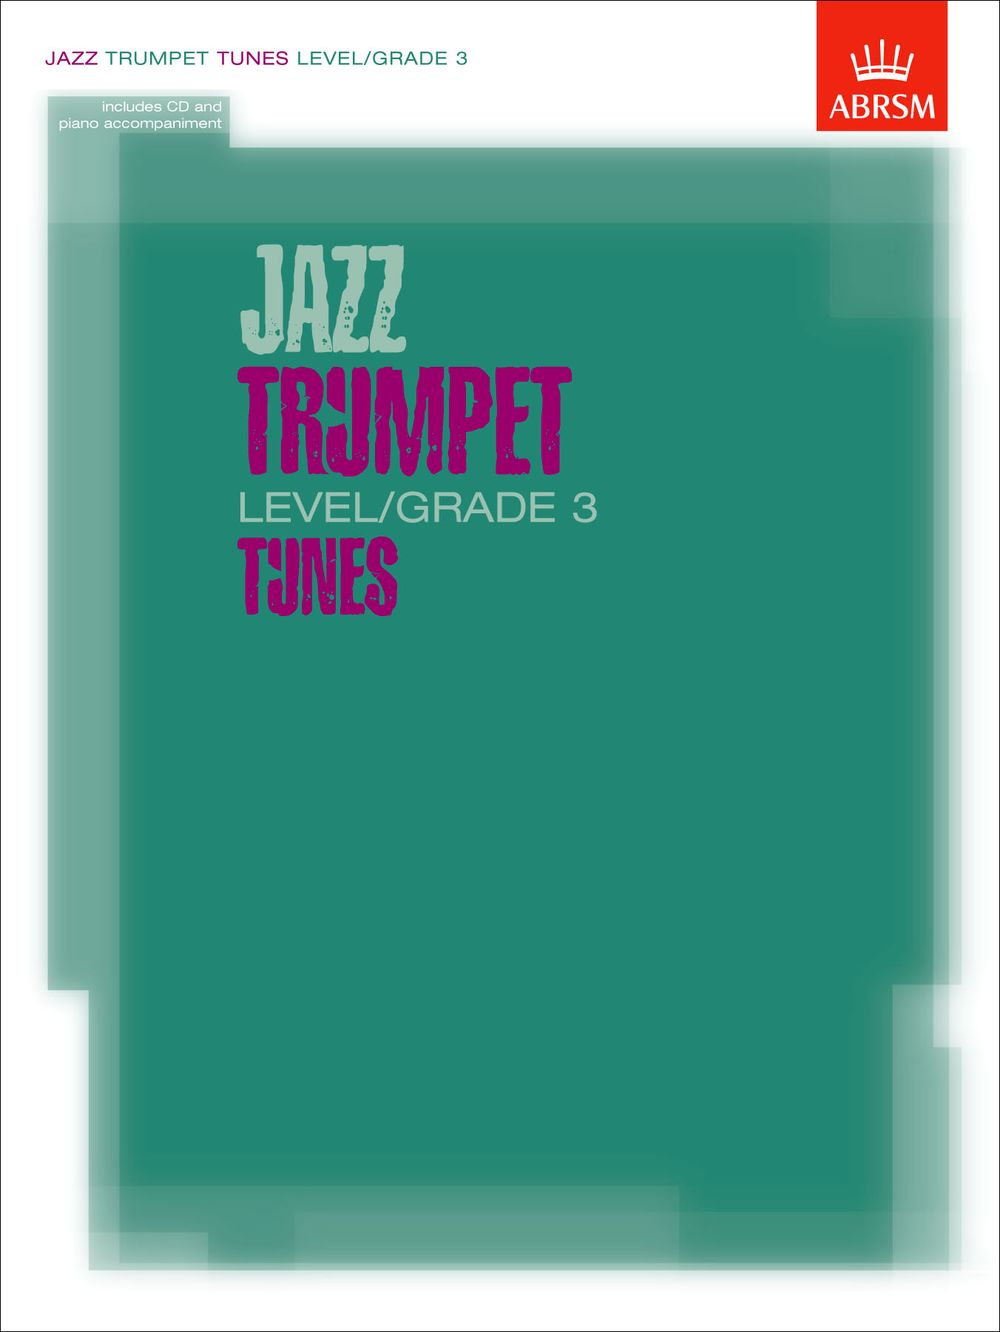 Jazz Trumpet Level/Grade 3 Tunes: Trumpet: Instrumental Album